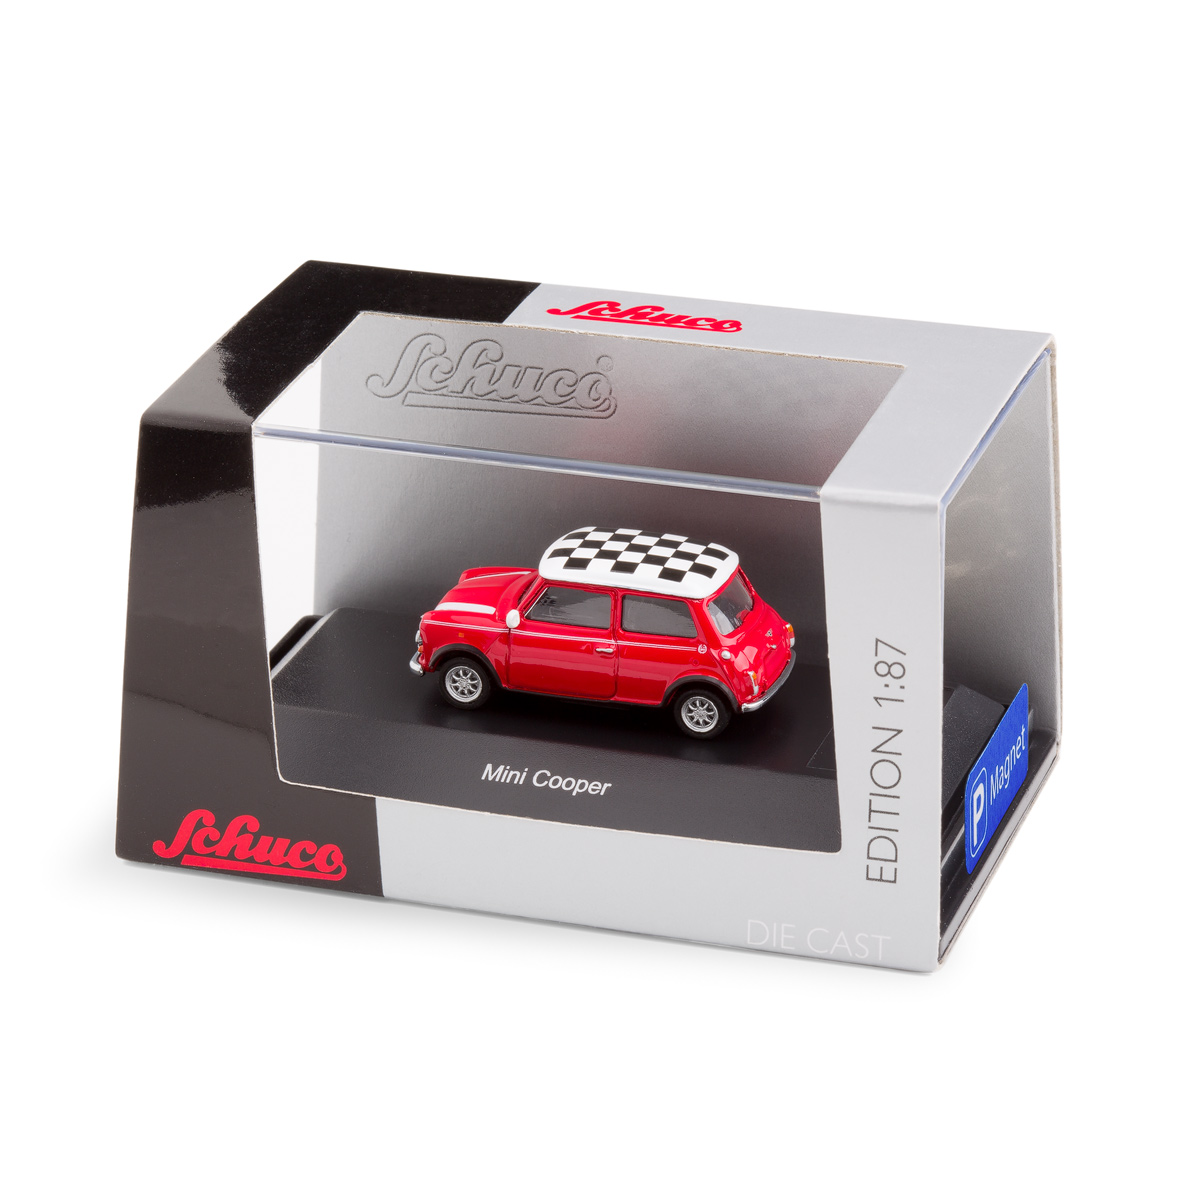 Mini Cooper with magnet in the underfloor | The Design Gift Shop